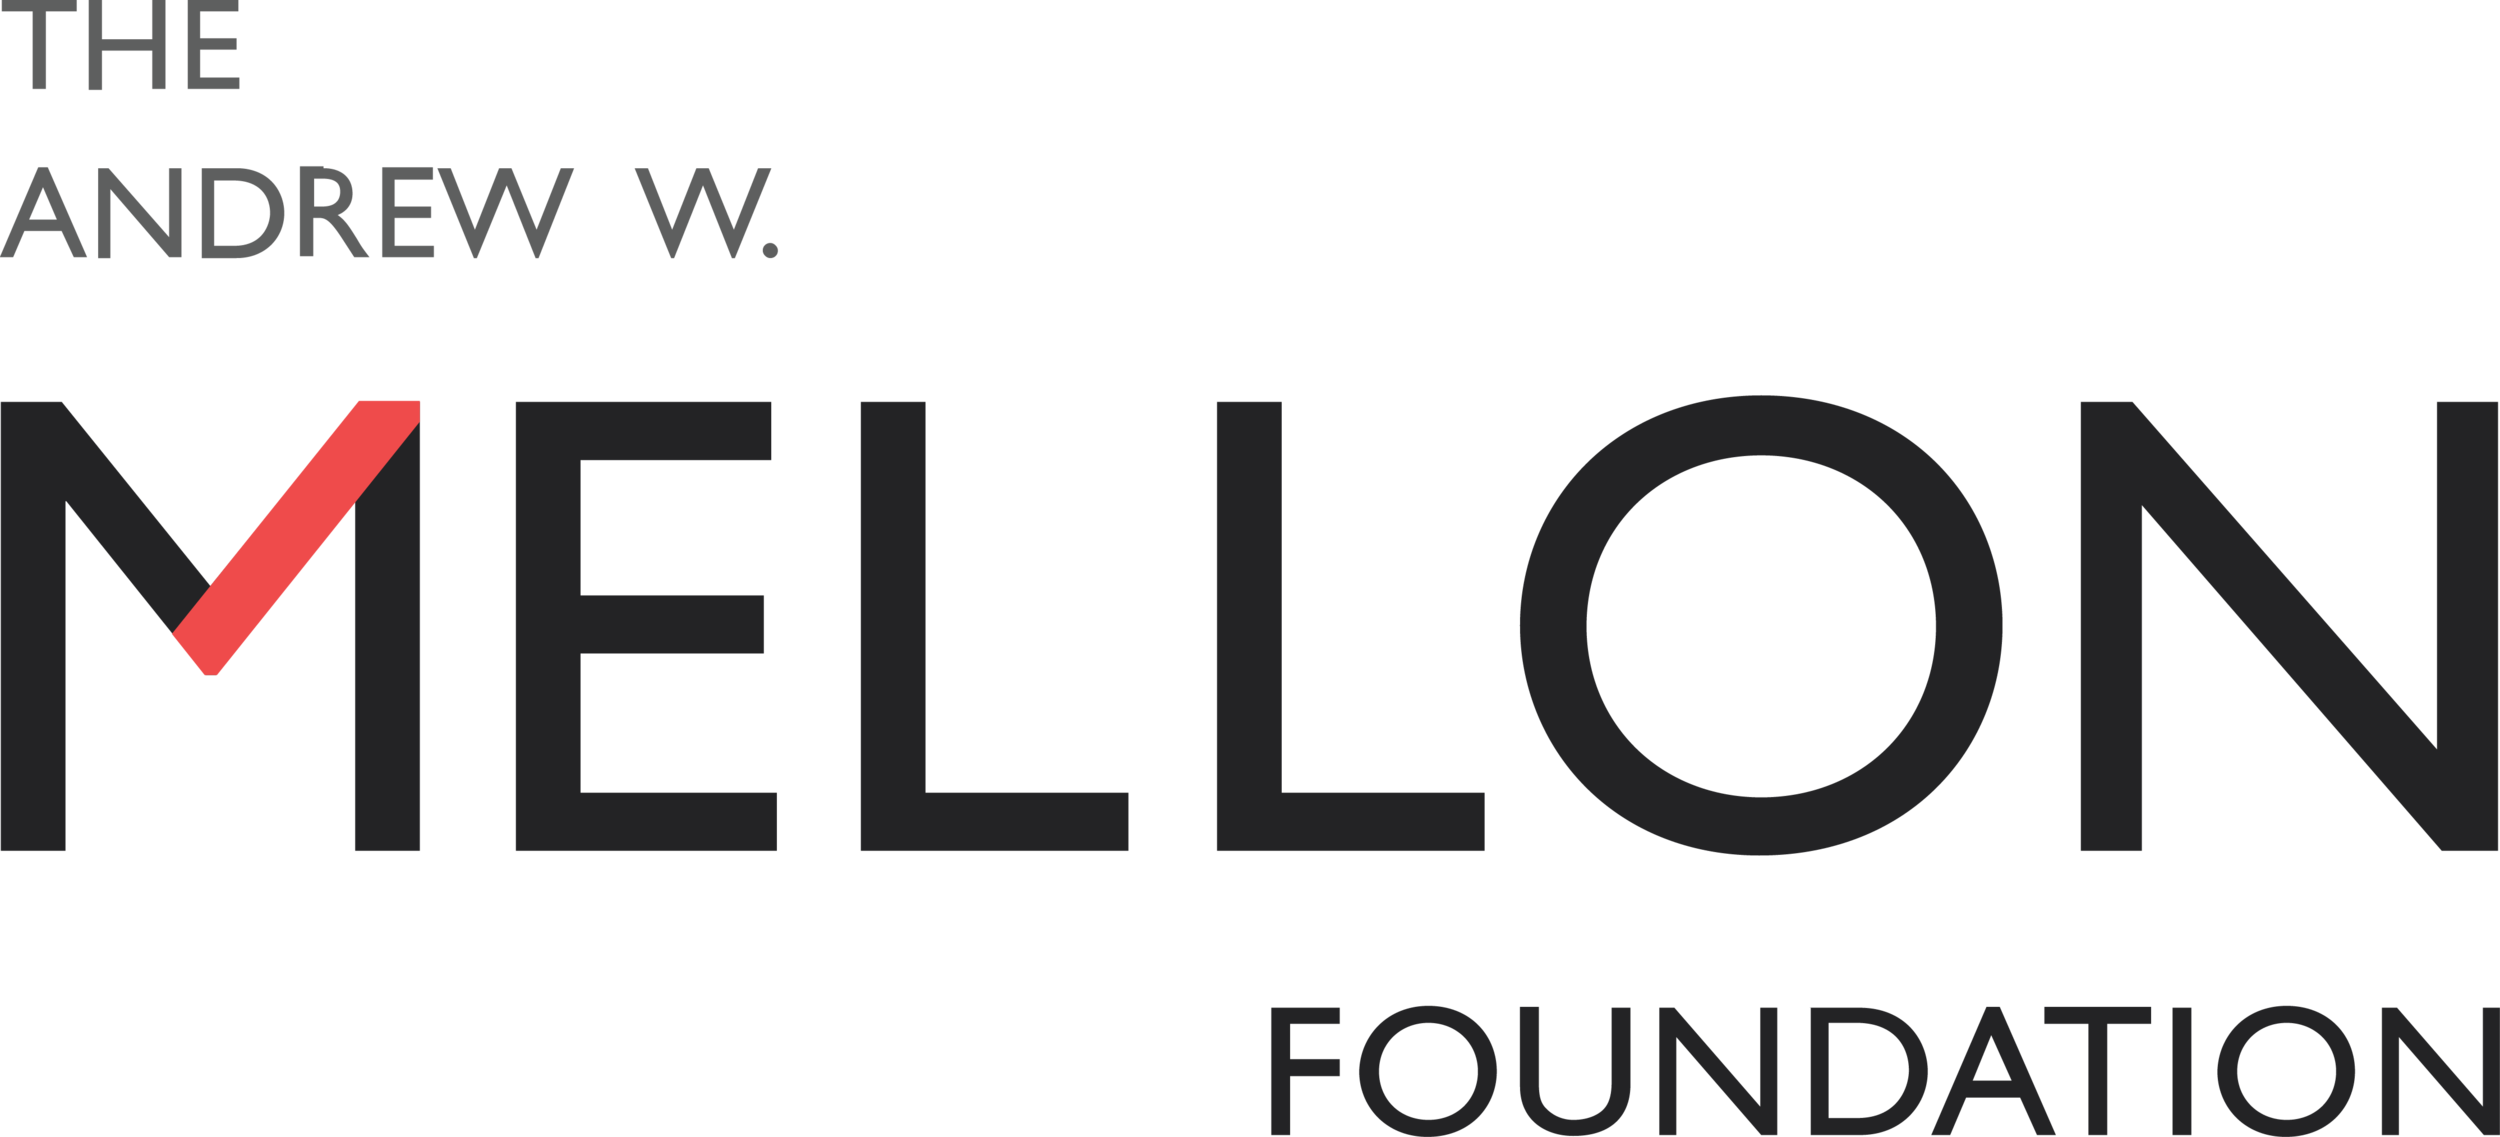 The-Andrew-W-Mellon-Foundation.png